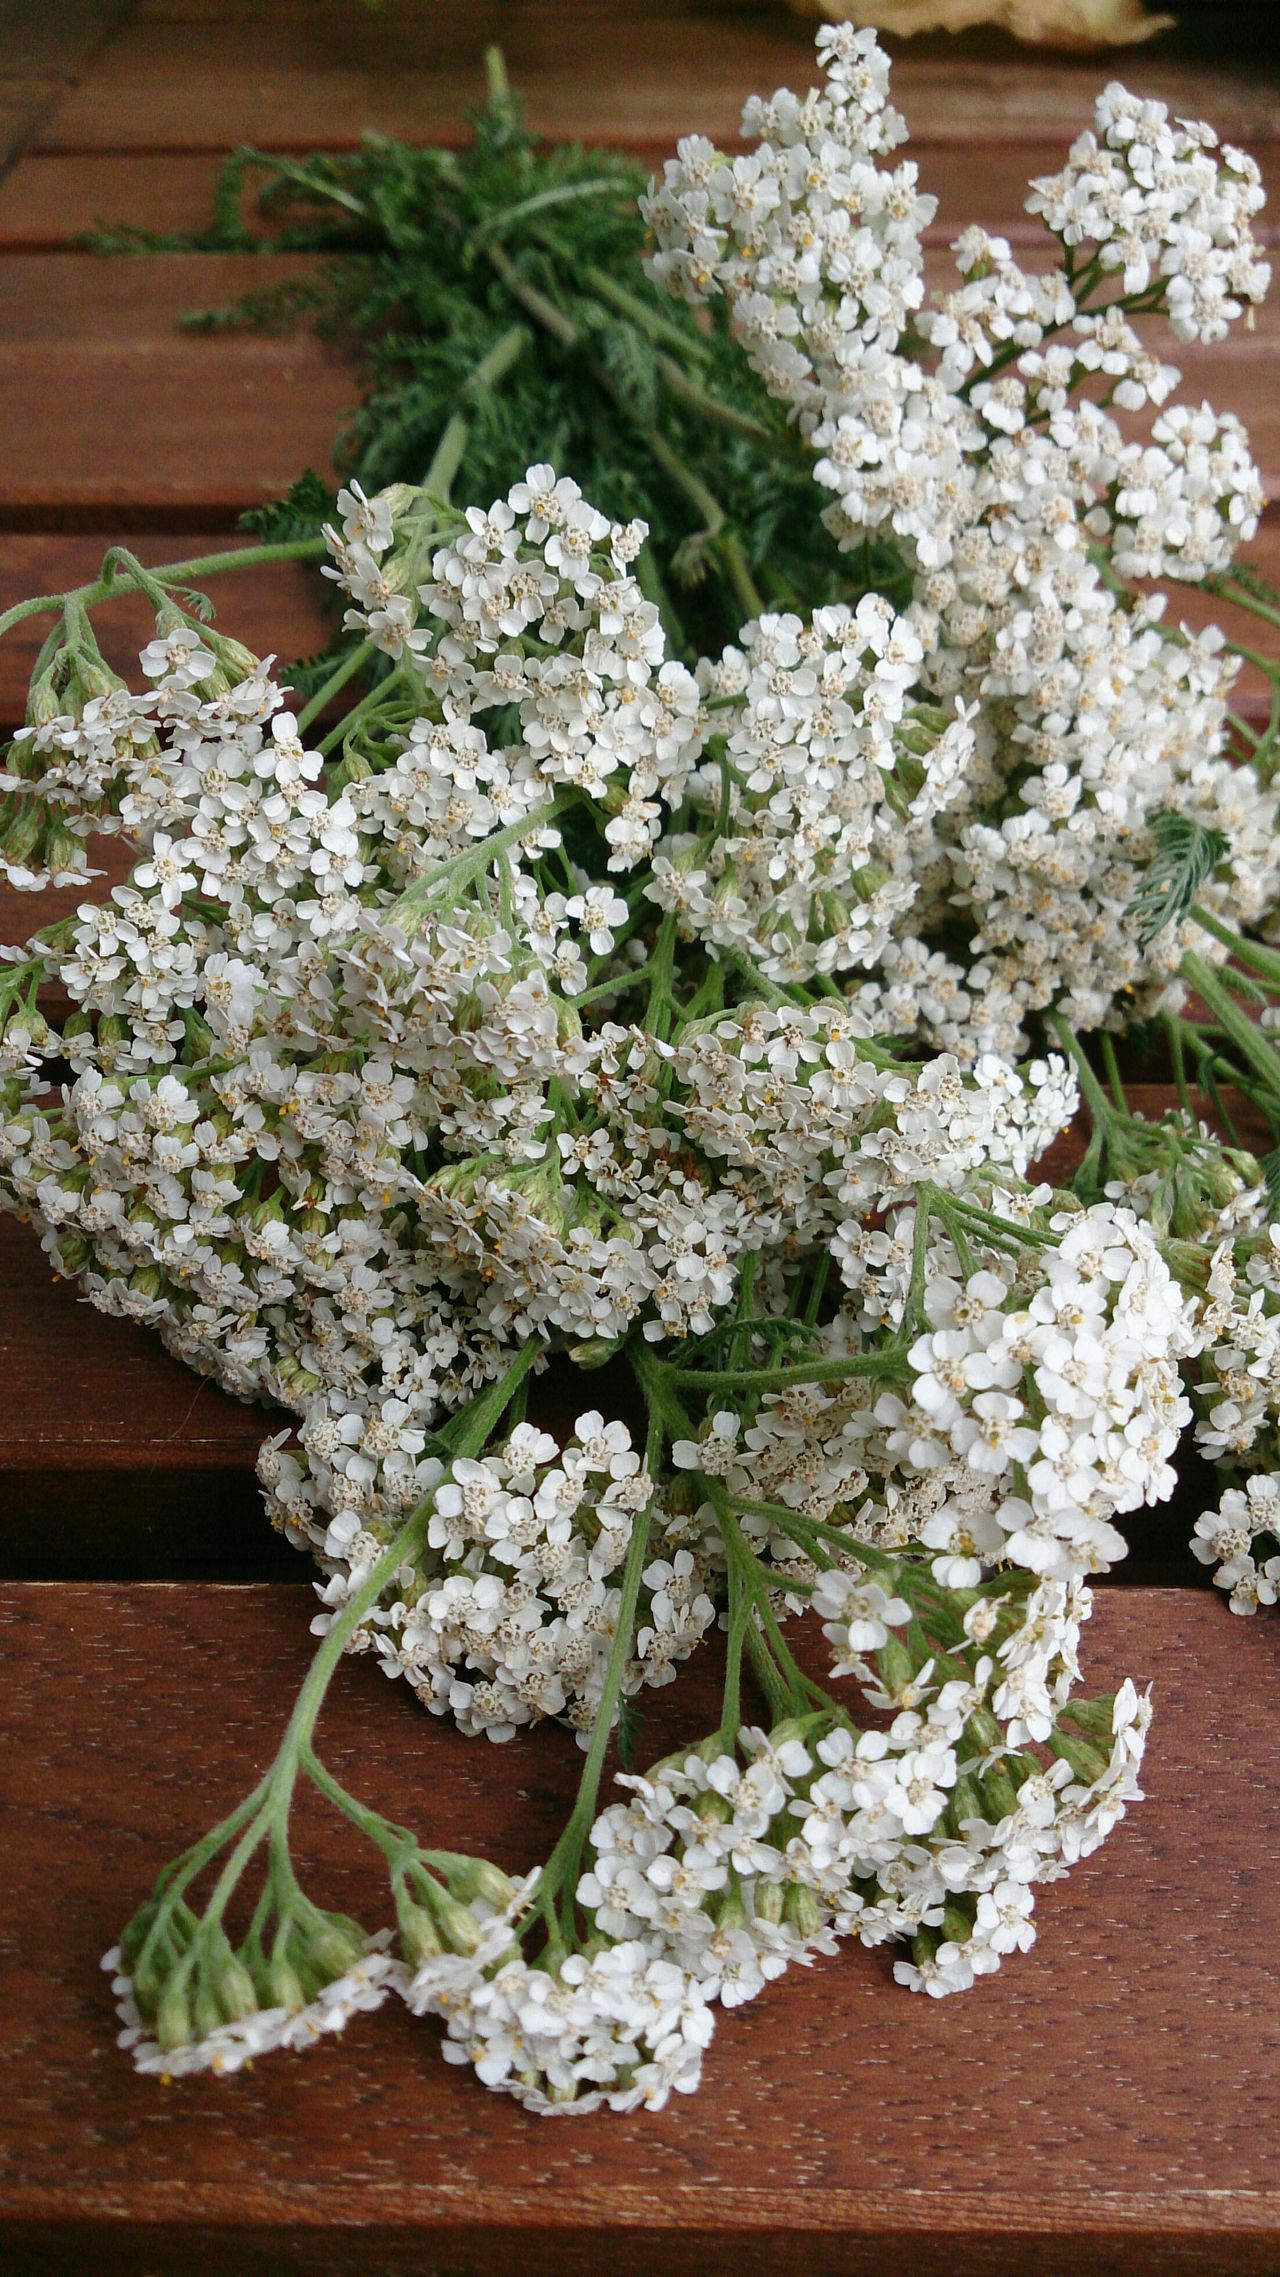 Freshness Close-up Food Indoors  No People Day Flower Head Herbal Healthy Gathering Harvest Beauty In Nature Yarrow Nature EyeEmNewHere